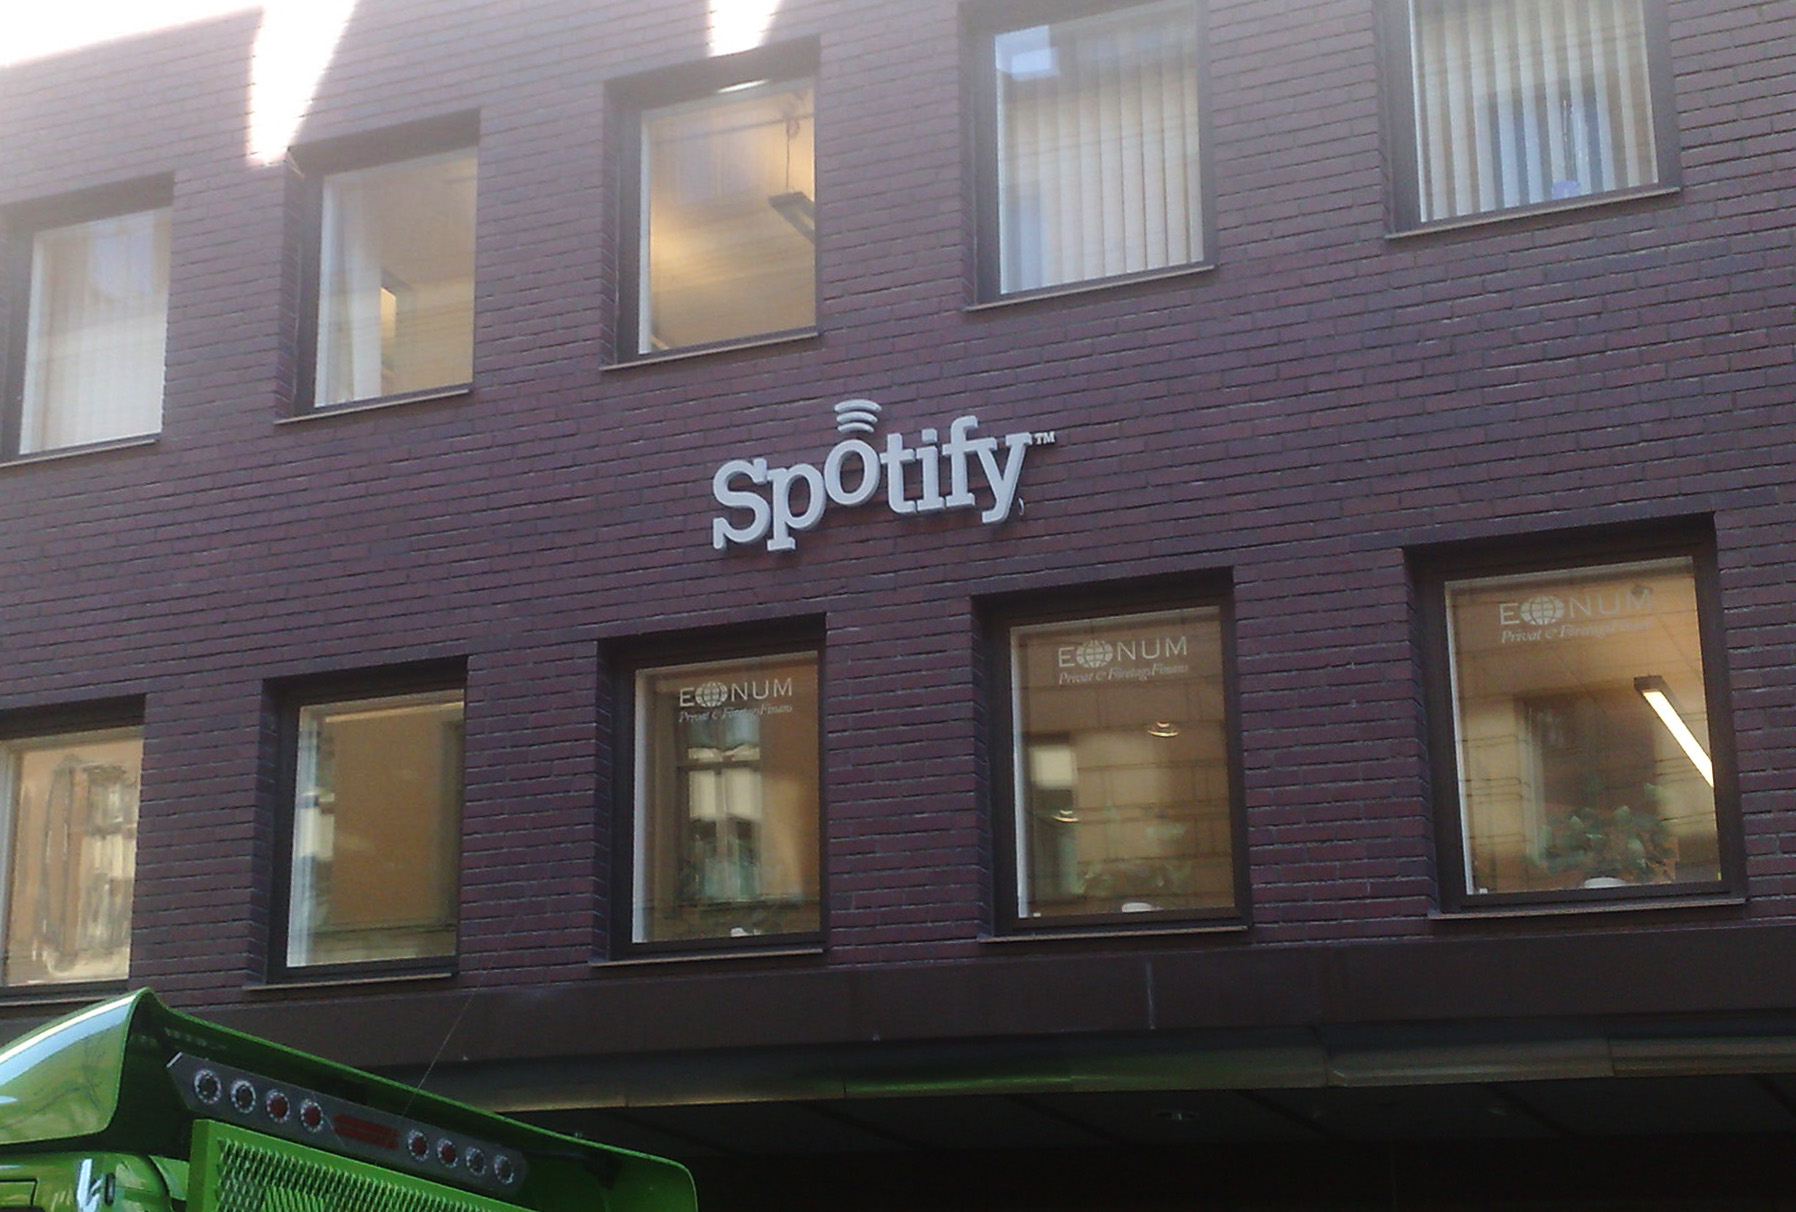 Former Spotify headquarters in Stockholm